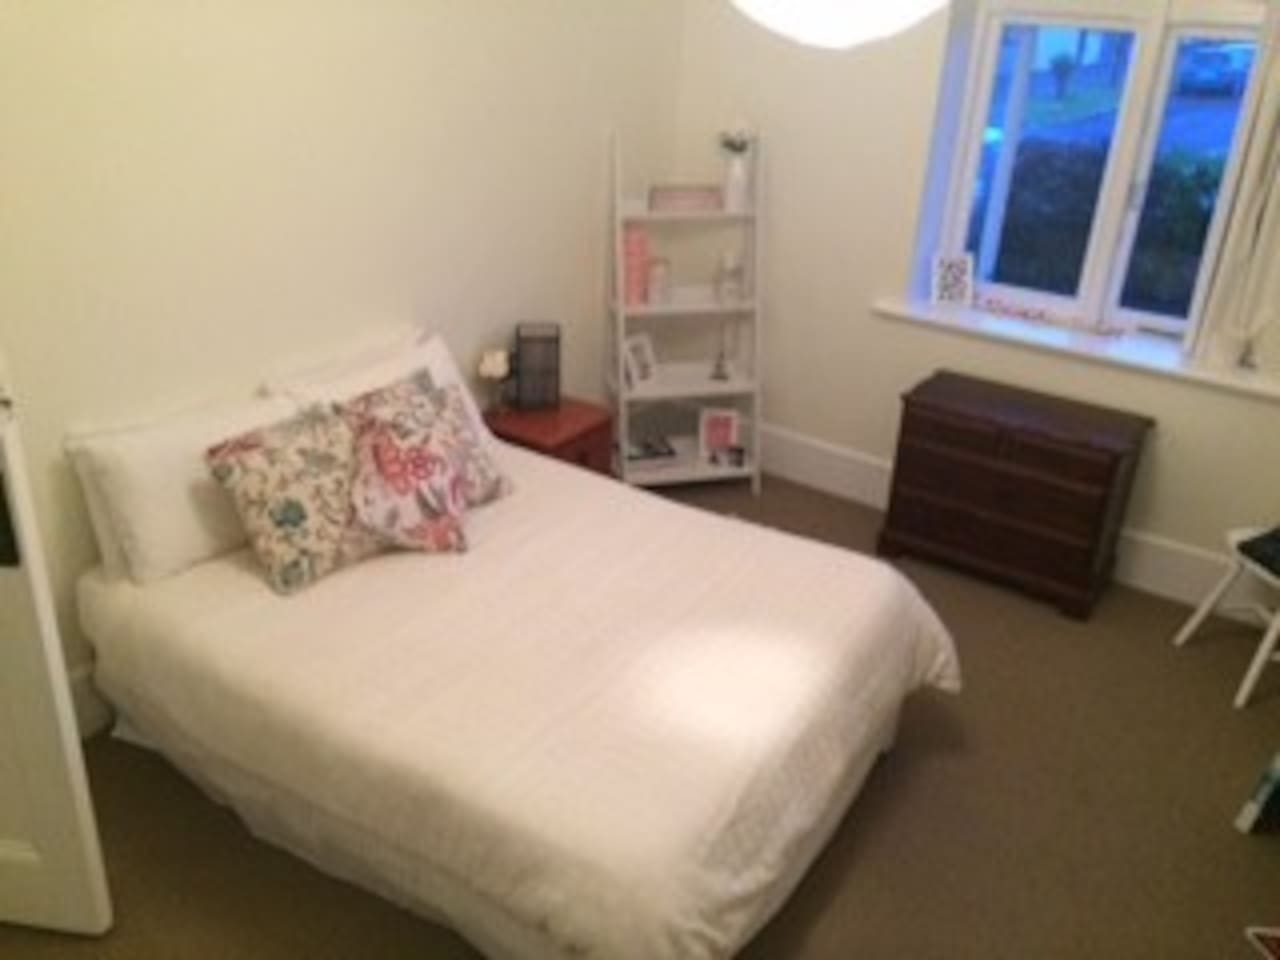 Bedroom 1 with drawers, wardrobe and study desk.